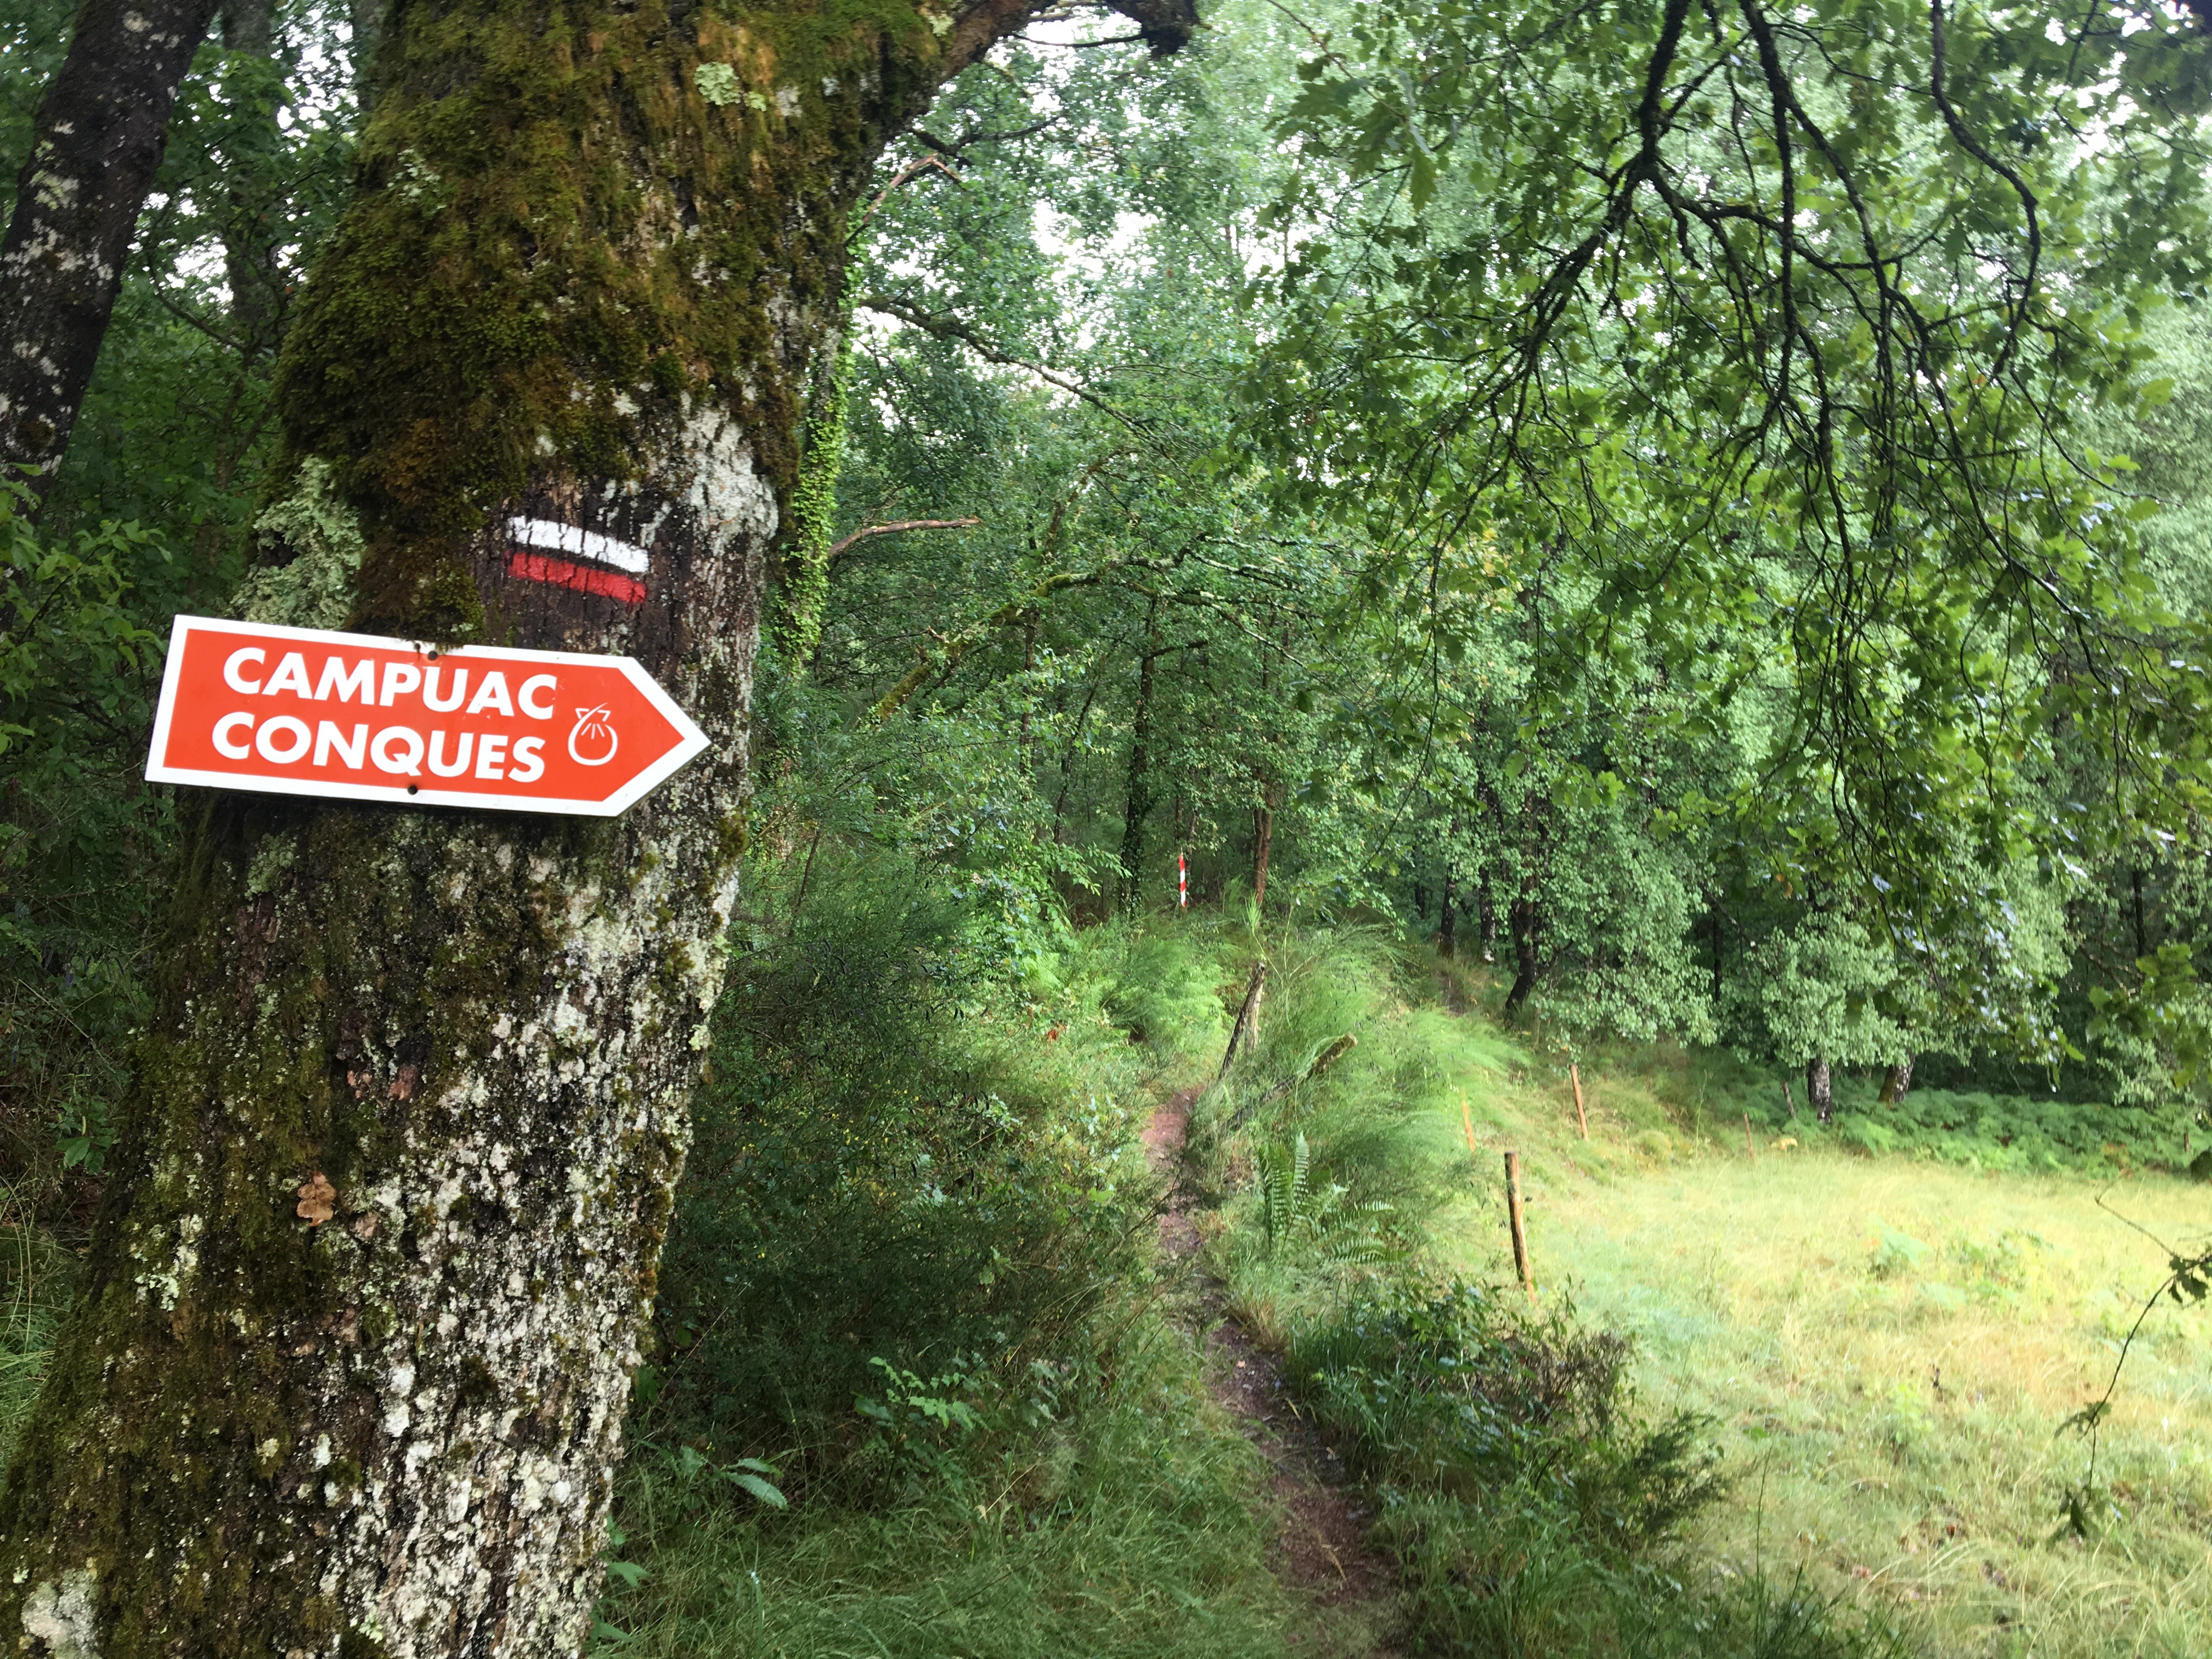 Following the signs on the Chemin